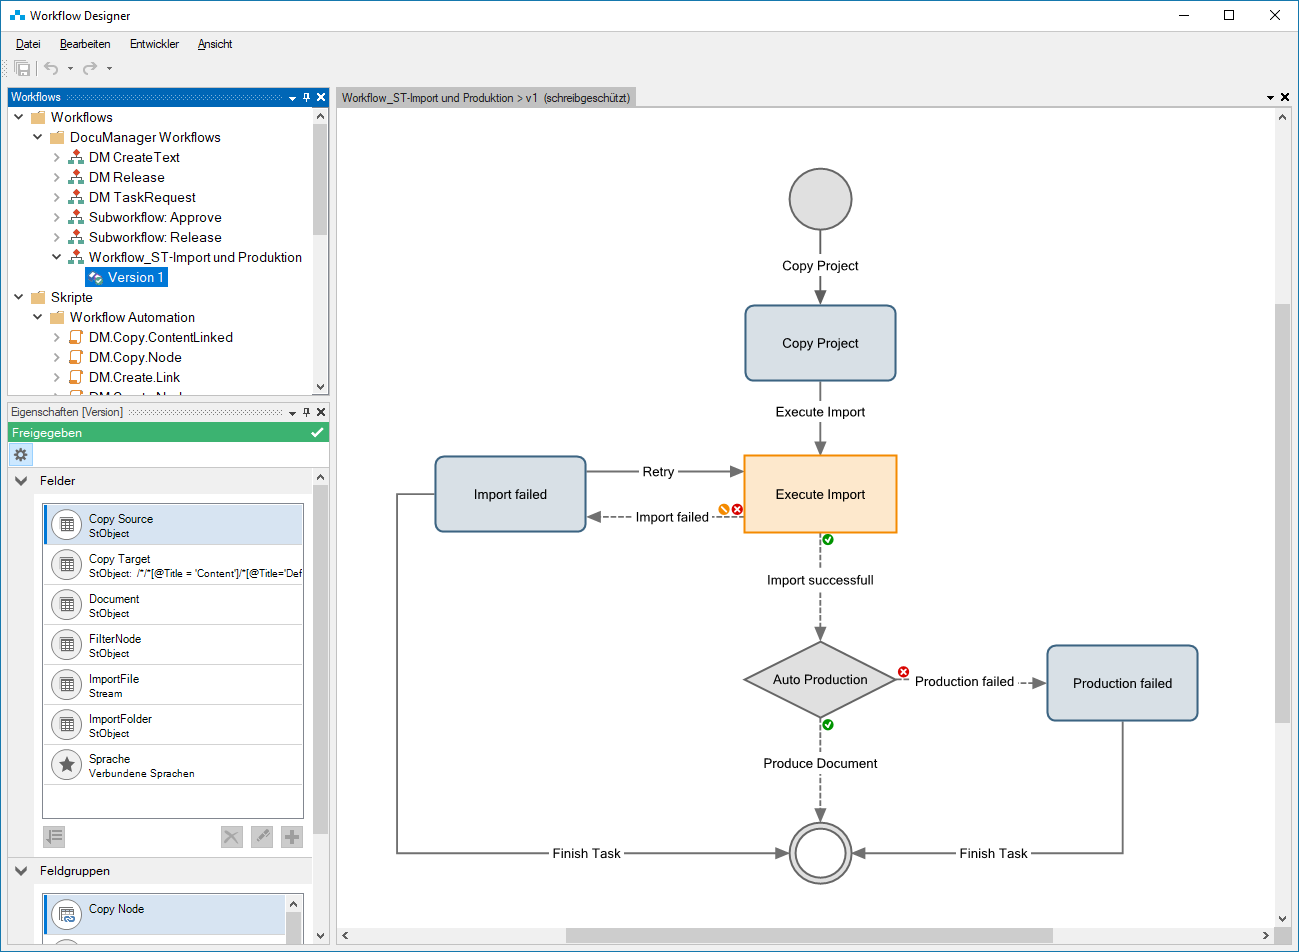 Workflow Designer using scripts from the Workflow Automation Library